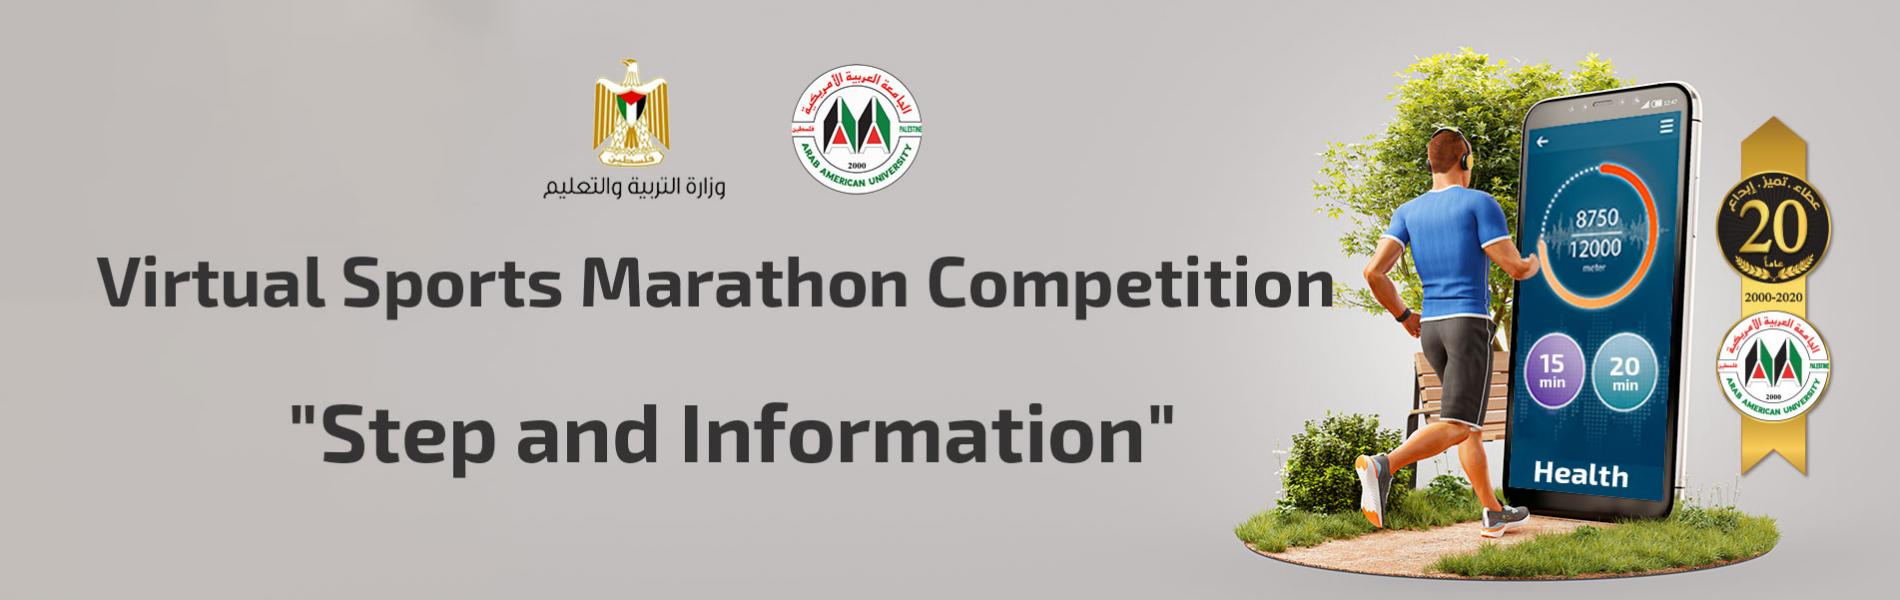 The Virtual Sports Marathon Competition